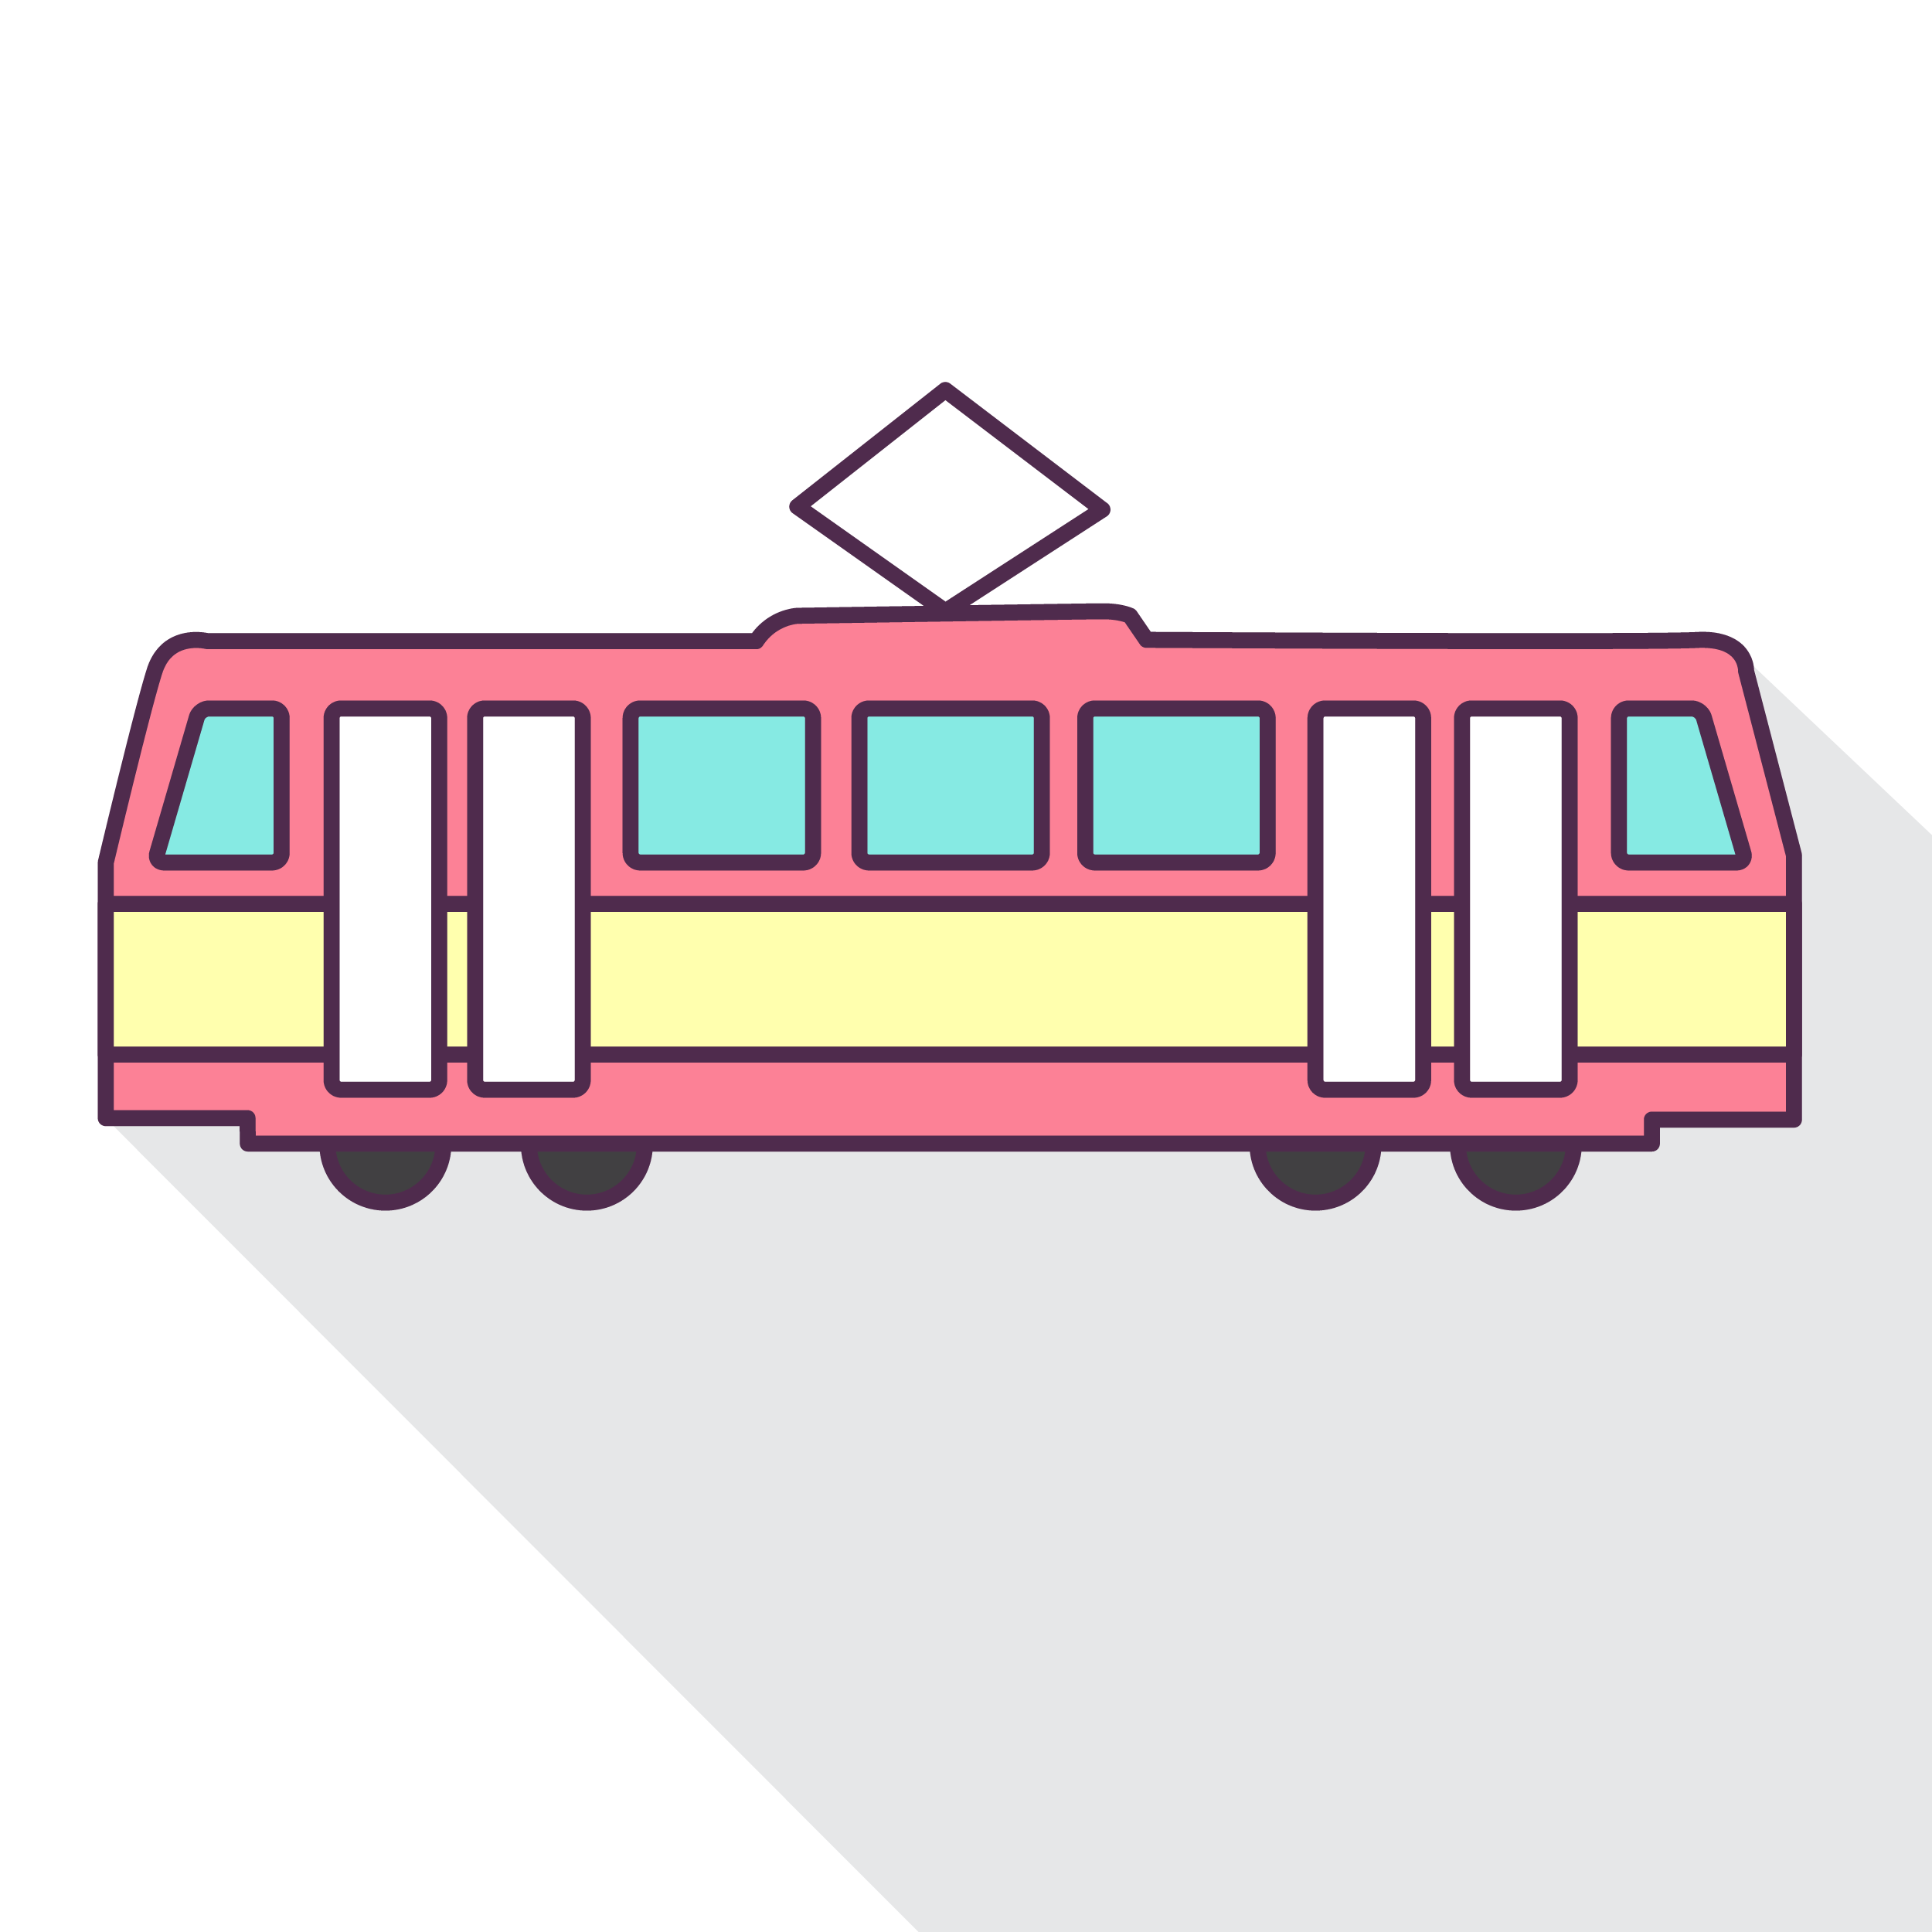 Passenger train car clipart clip free library Trinetra - About: Free Indian Symbols, Signs, Patterns, Graphics ... clip free library